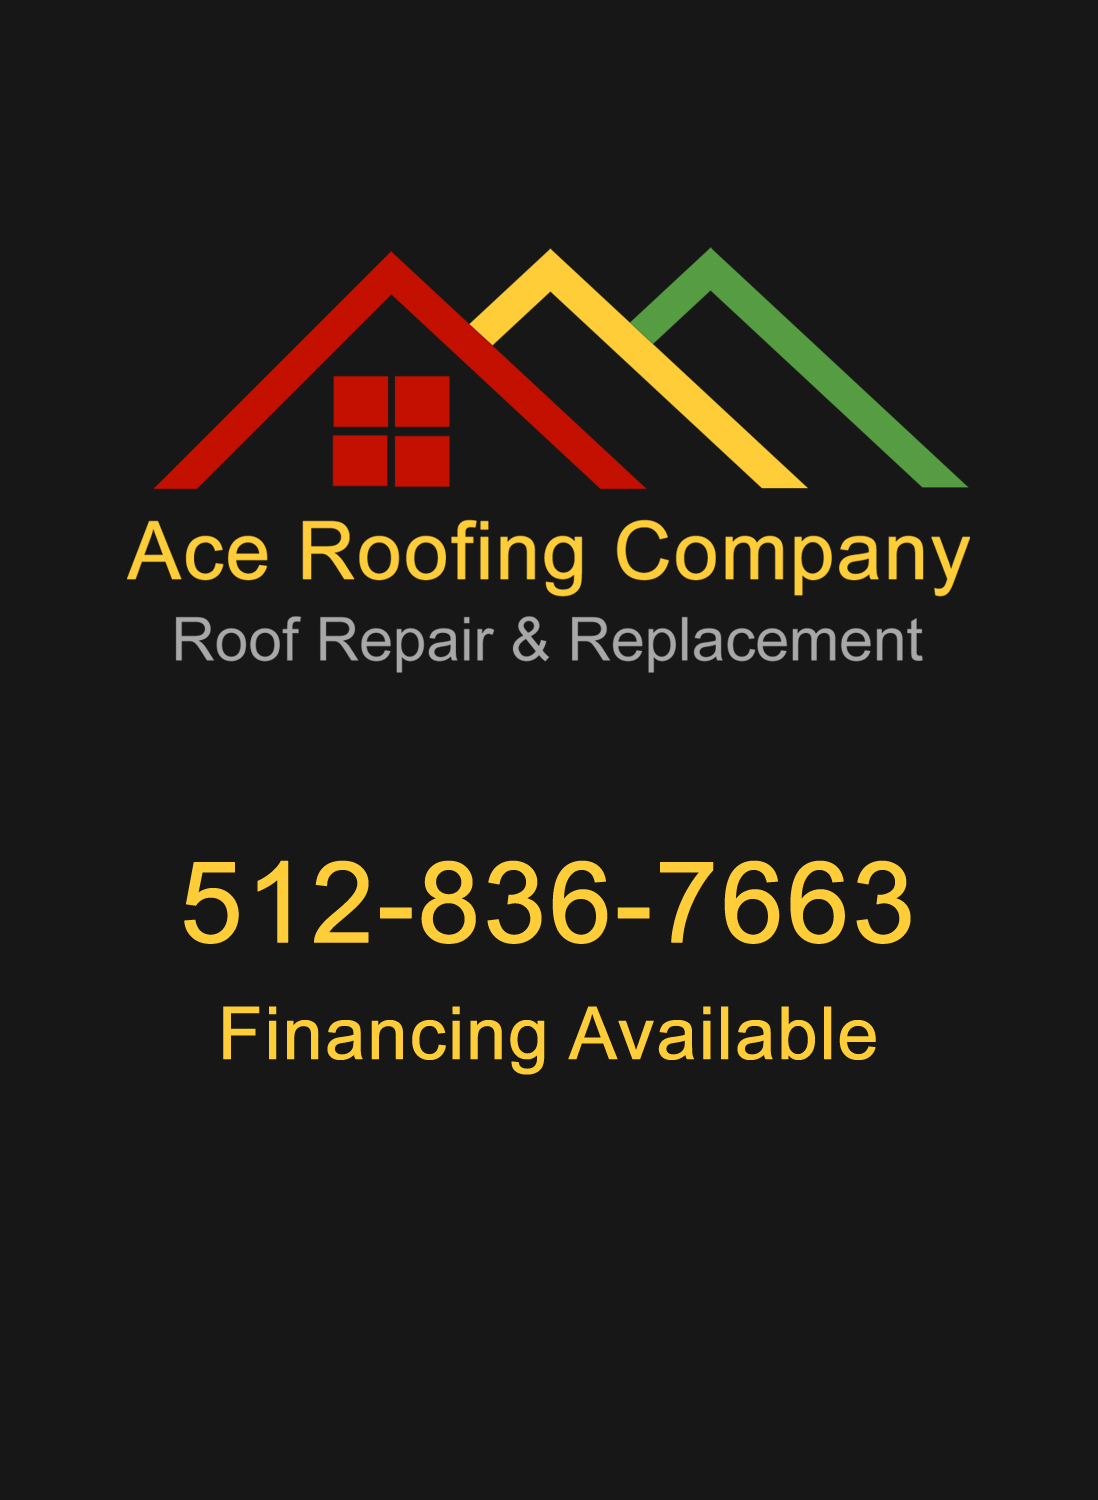 Ace Roofing Company Austin TX Celebrates Earning Top Google Reviews